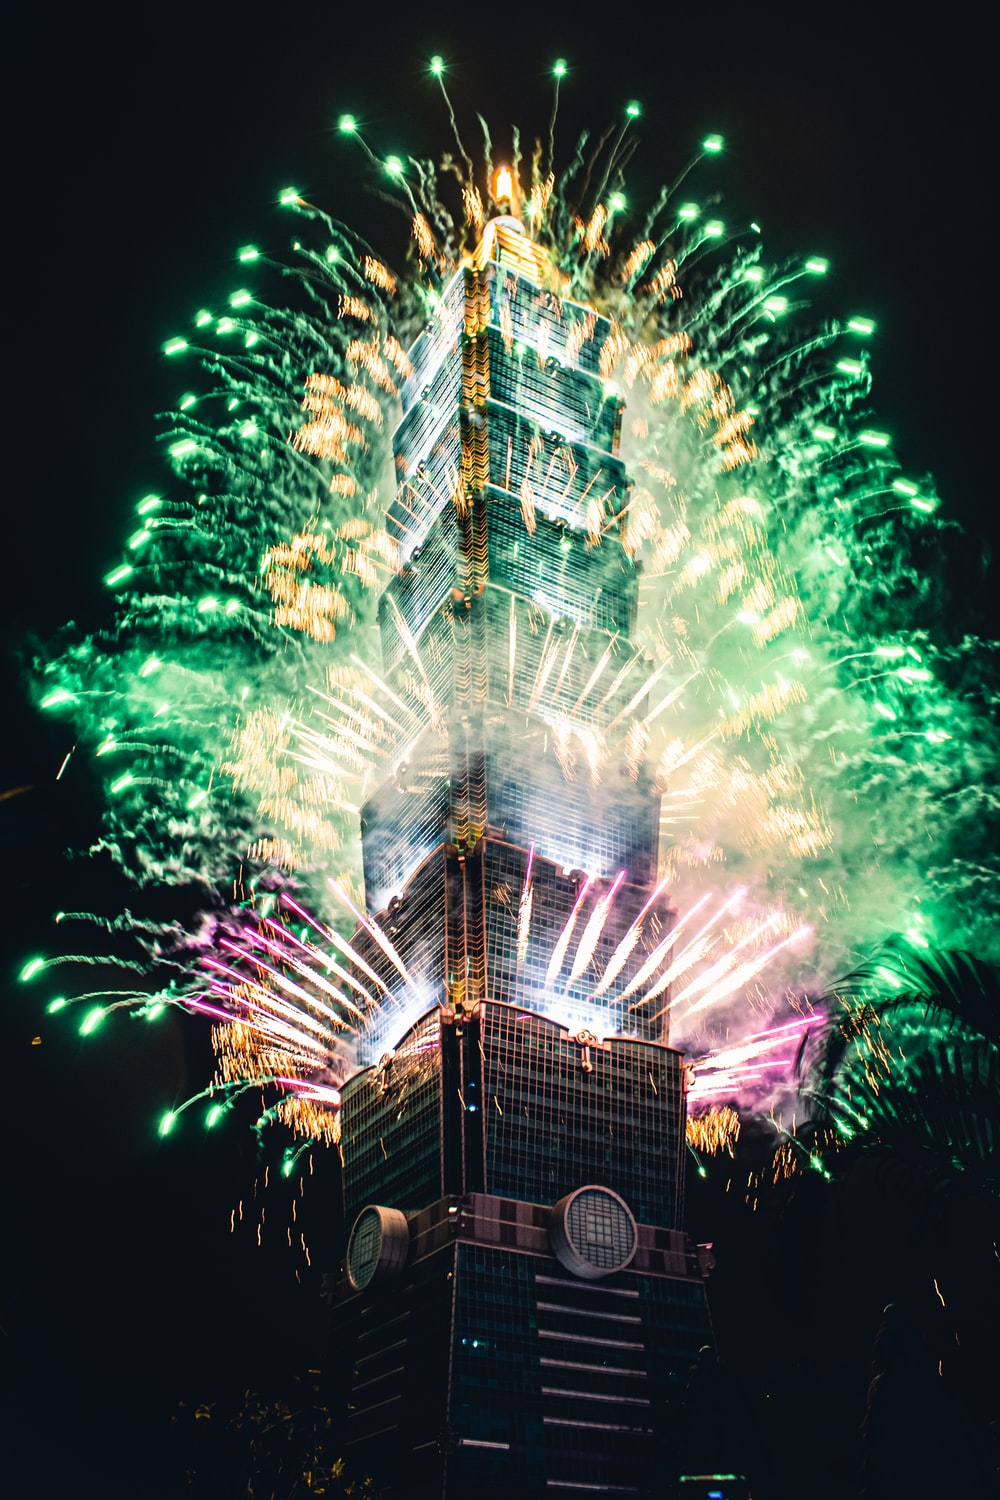 green and yellow fireworks display during nighttime